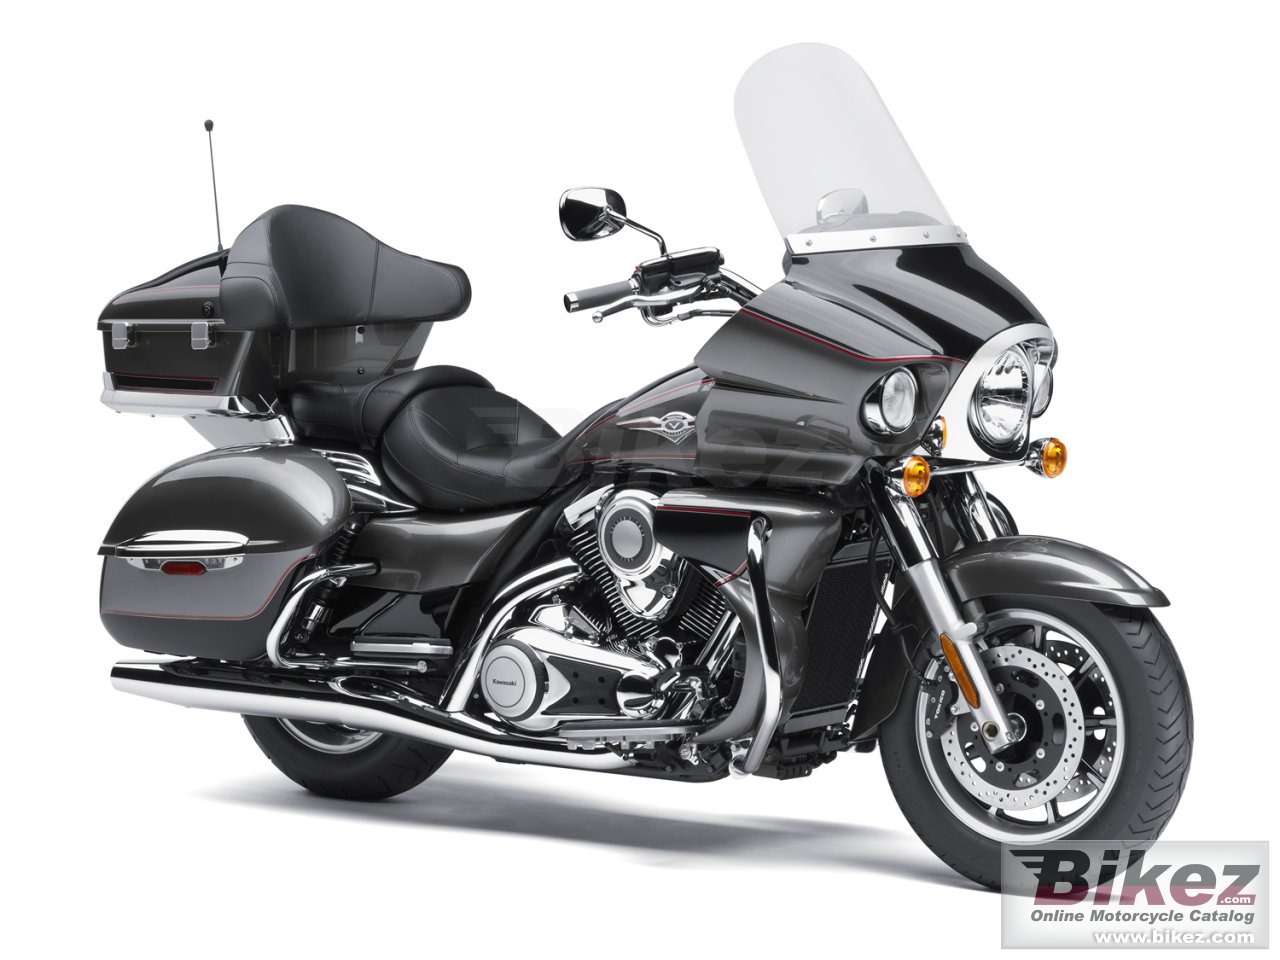 Big Kawasaki vulcan vn1700 voyager picture and wallpaper from Bikez.com